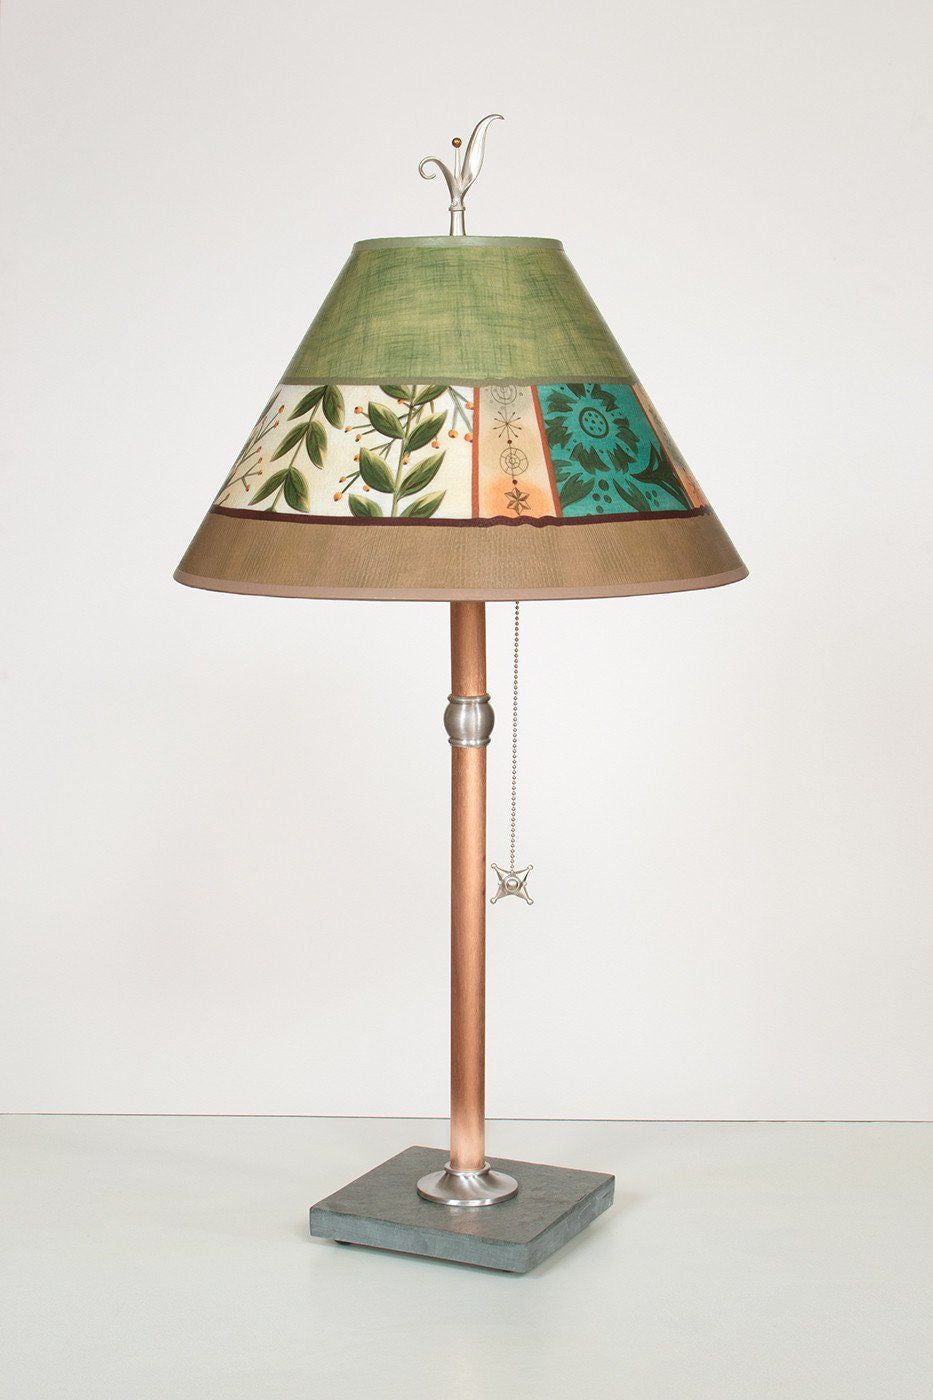 Copper Table Lamp with Medium Conical Shade in Spring Medley Apple - Lit